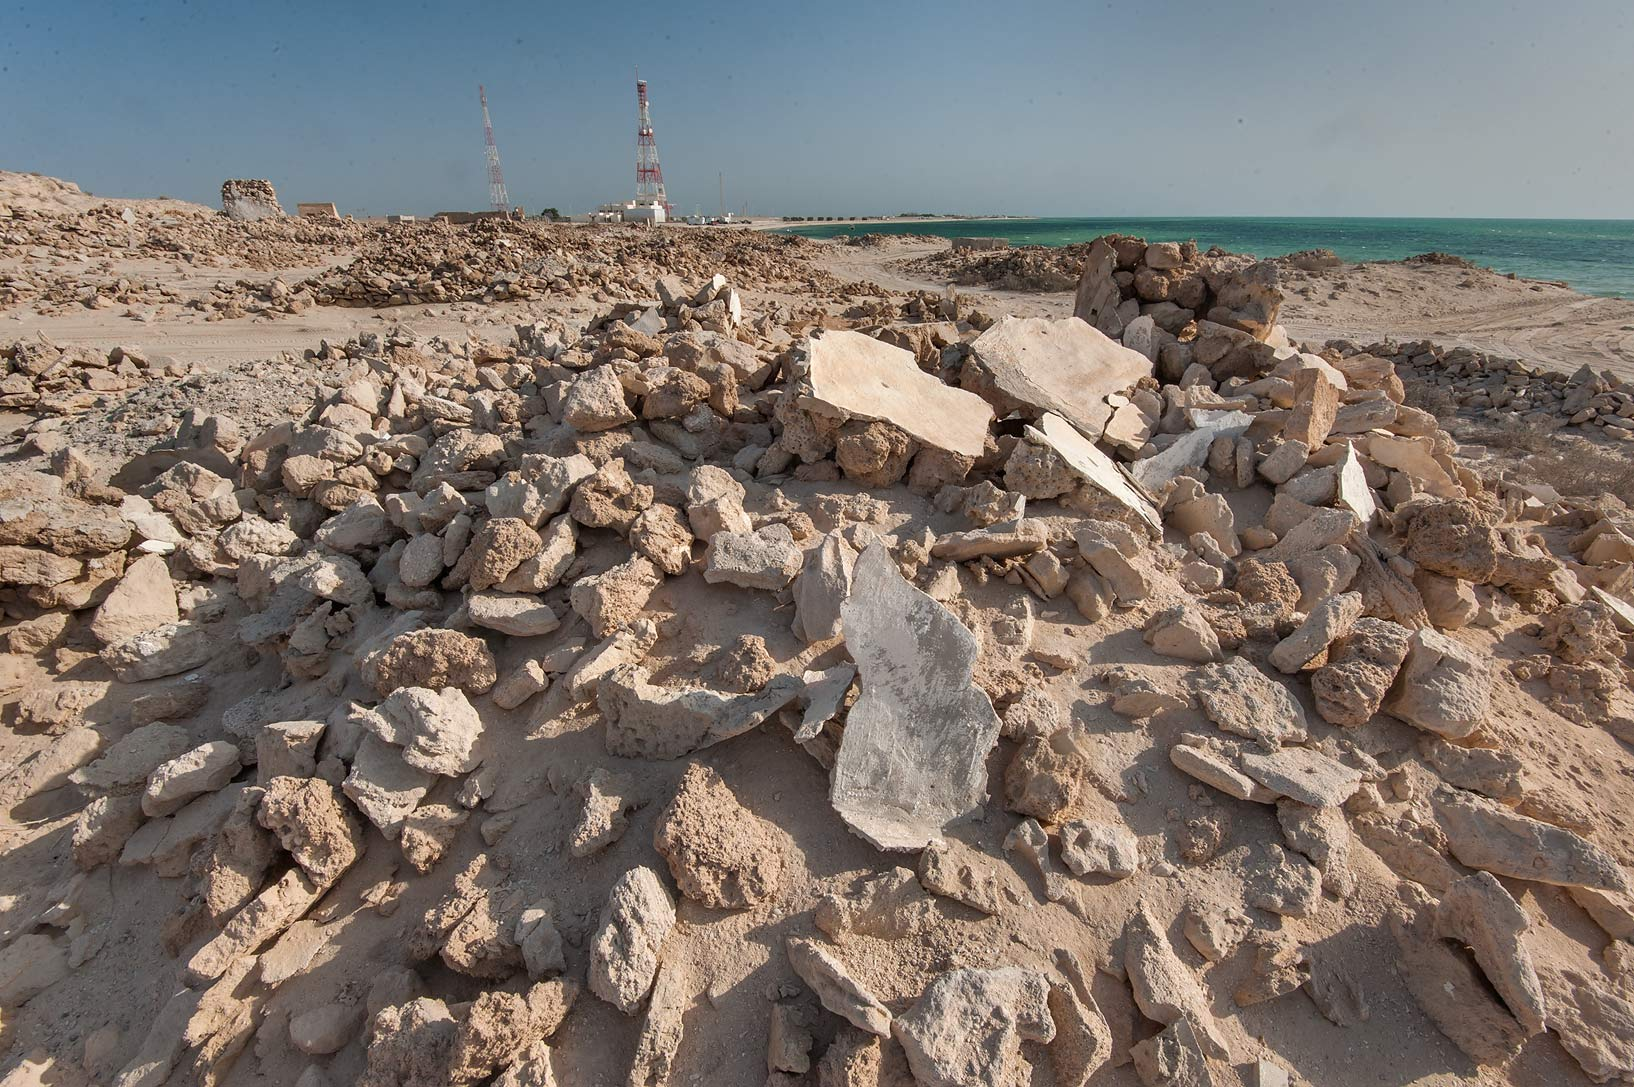 Stone pile in old fishing village (ghost town) of...eastern coast, Ash Shamal area. Qatar